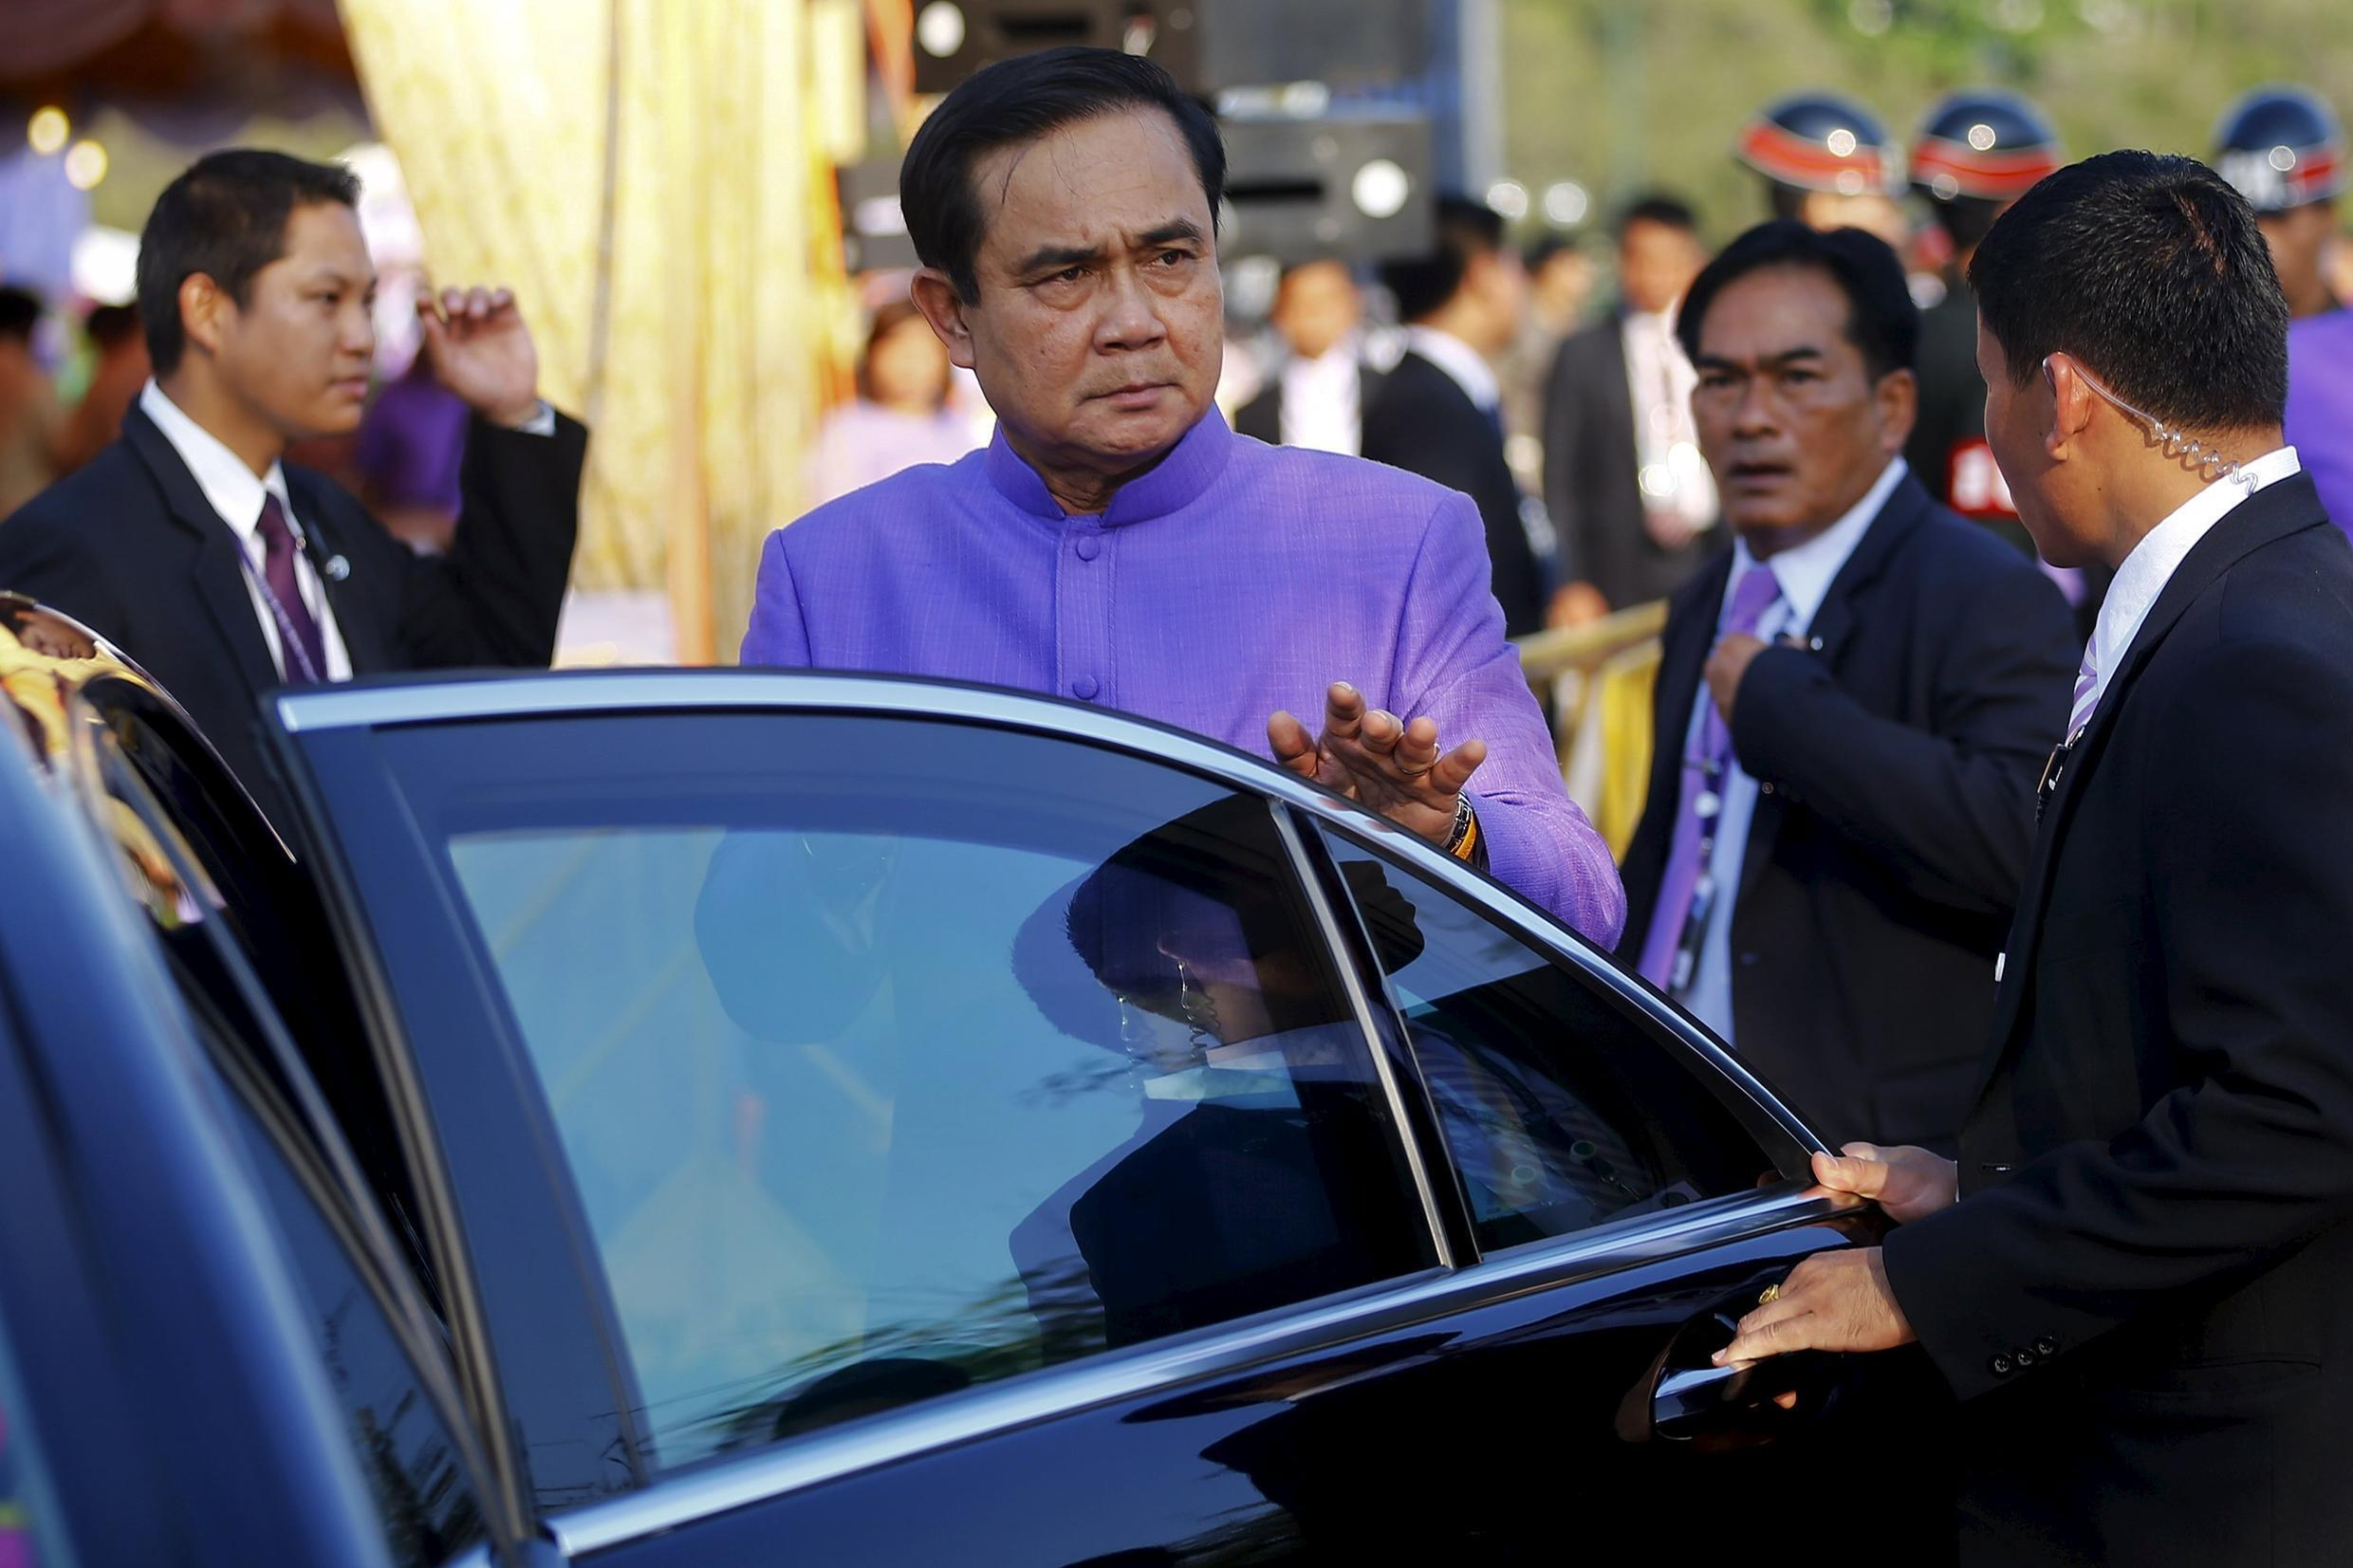 Thailand's Prime Minister Prayuth Chan-ocha gets in his car at Sanam Luang in Bangkok April 2, 2015, shortly after the lifting of martial law.